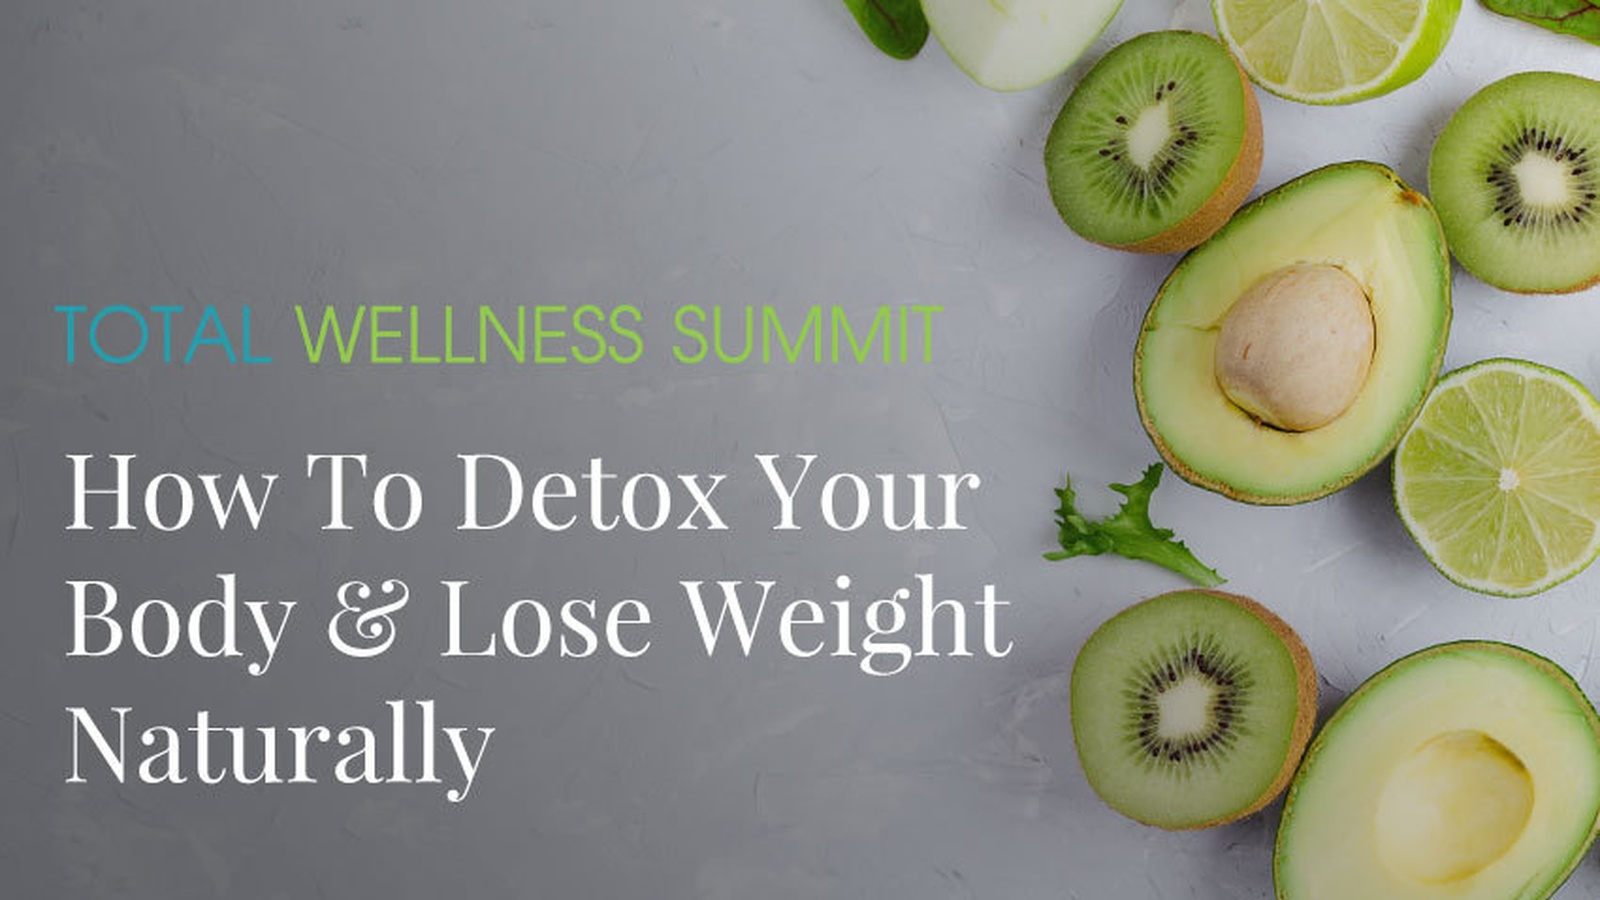 The Total Wellness Summit NOW LIVE: How to Detox Your Body & Lose Weight Naturally